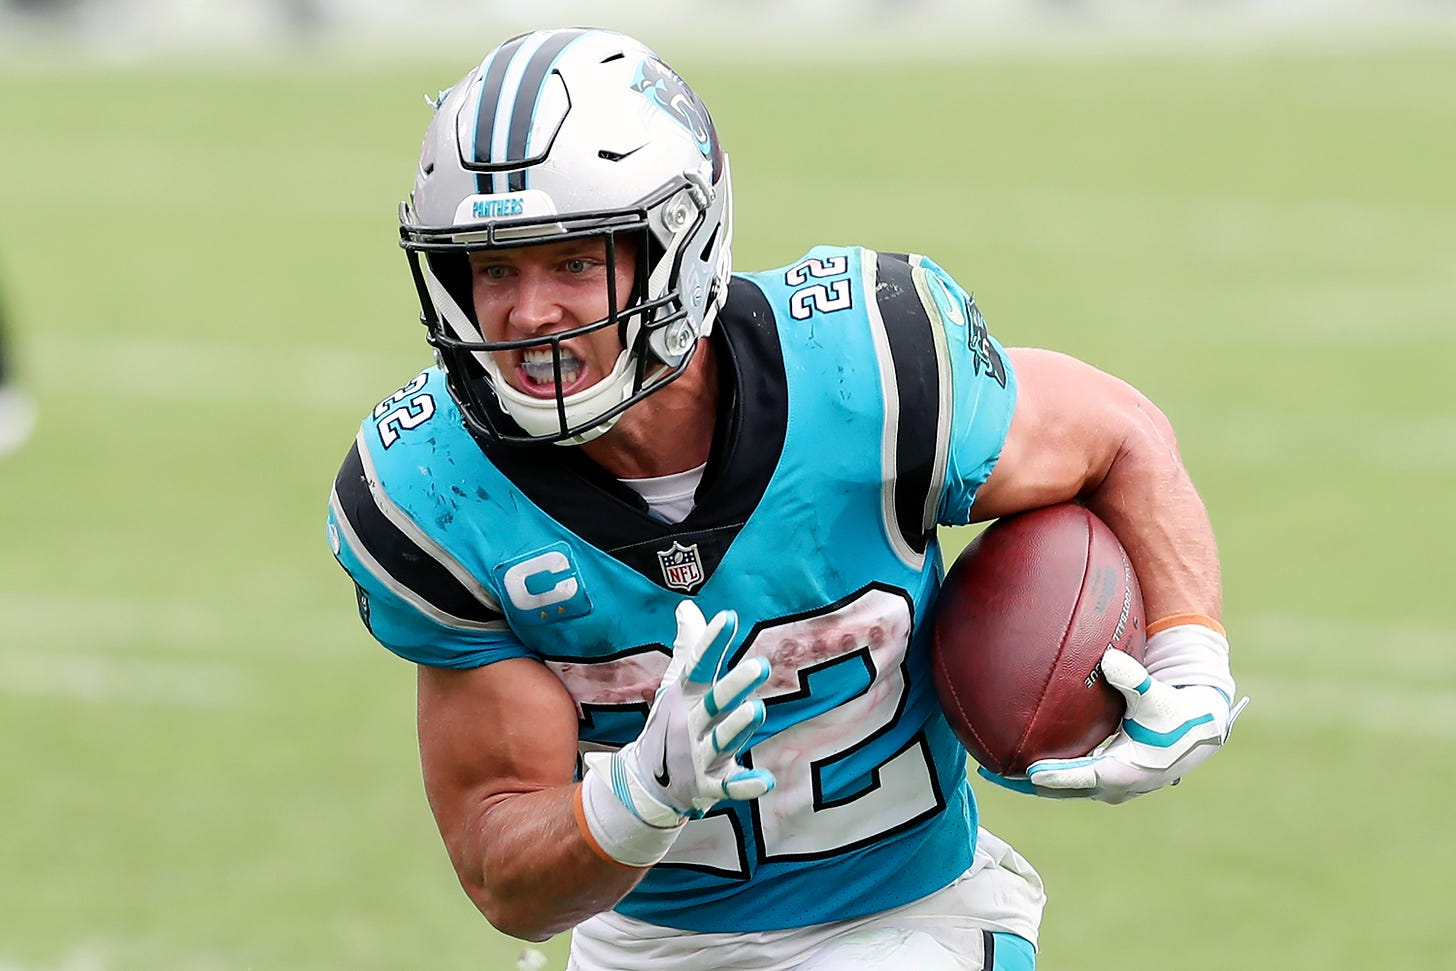 Injuries aside, Christian McCaffrey continues to fulfill expectations of  NFL superstardom